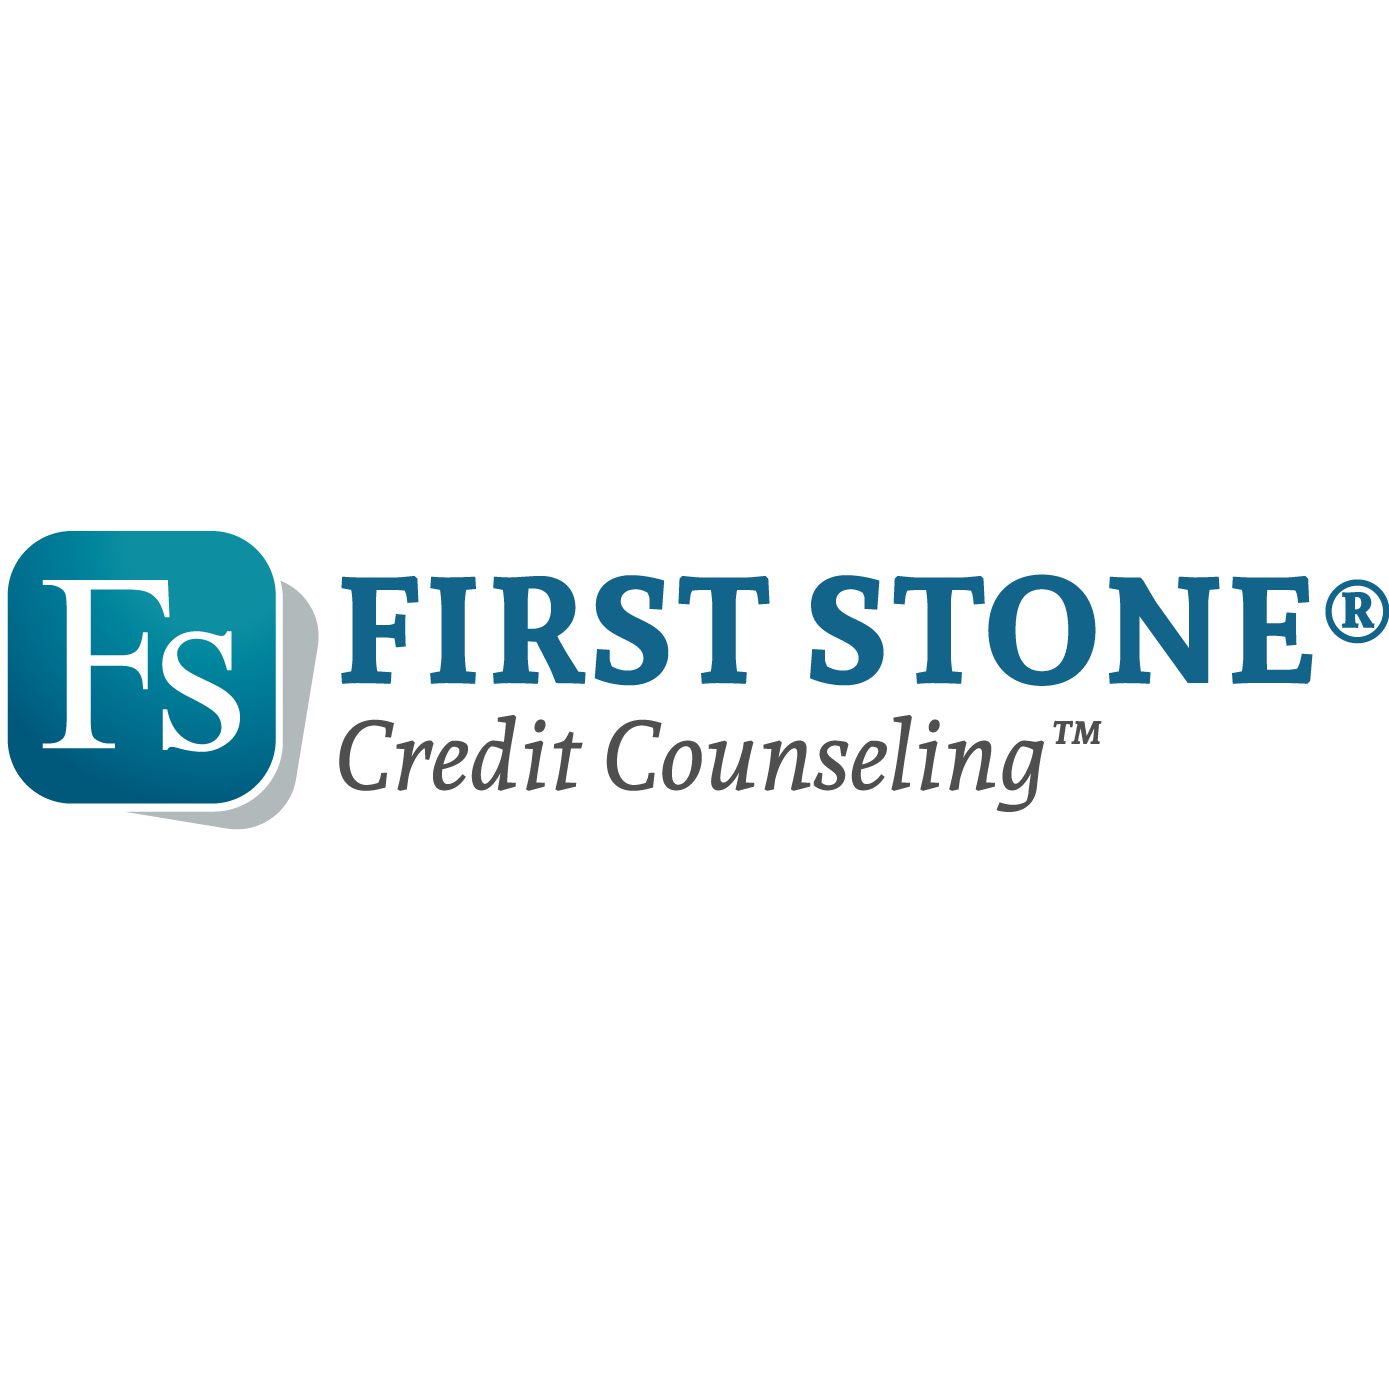 First Stone Credit Counseling